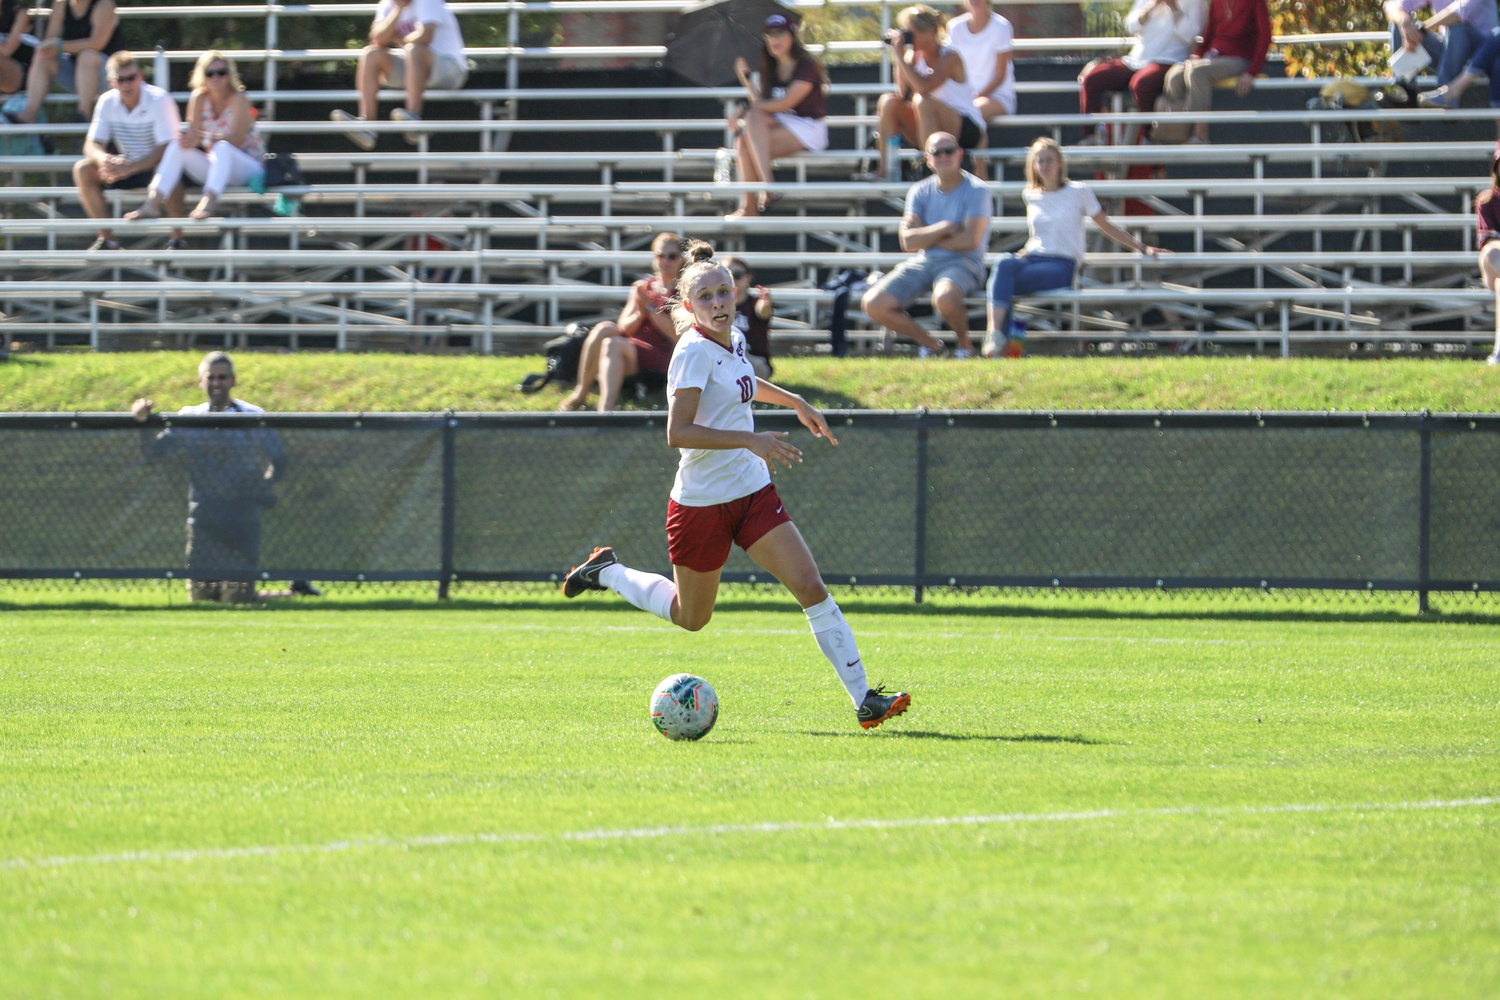 Angela Caloia, Friday's goal-scorer, will look to build off a first-year campaign that saw her find the score sheet 17 times in 16 games (six goals and 11 assists).